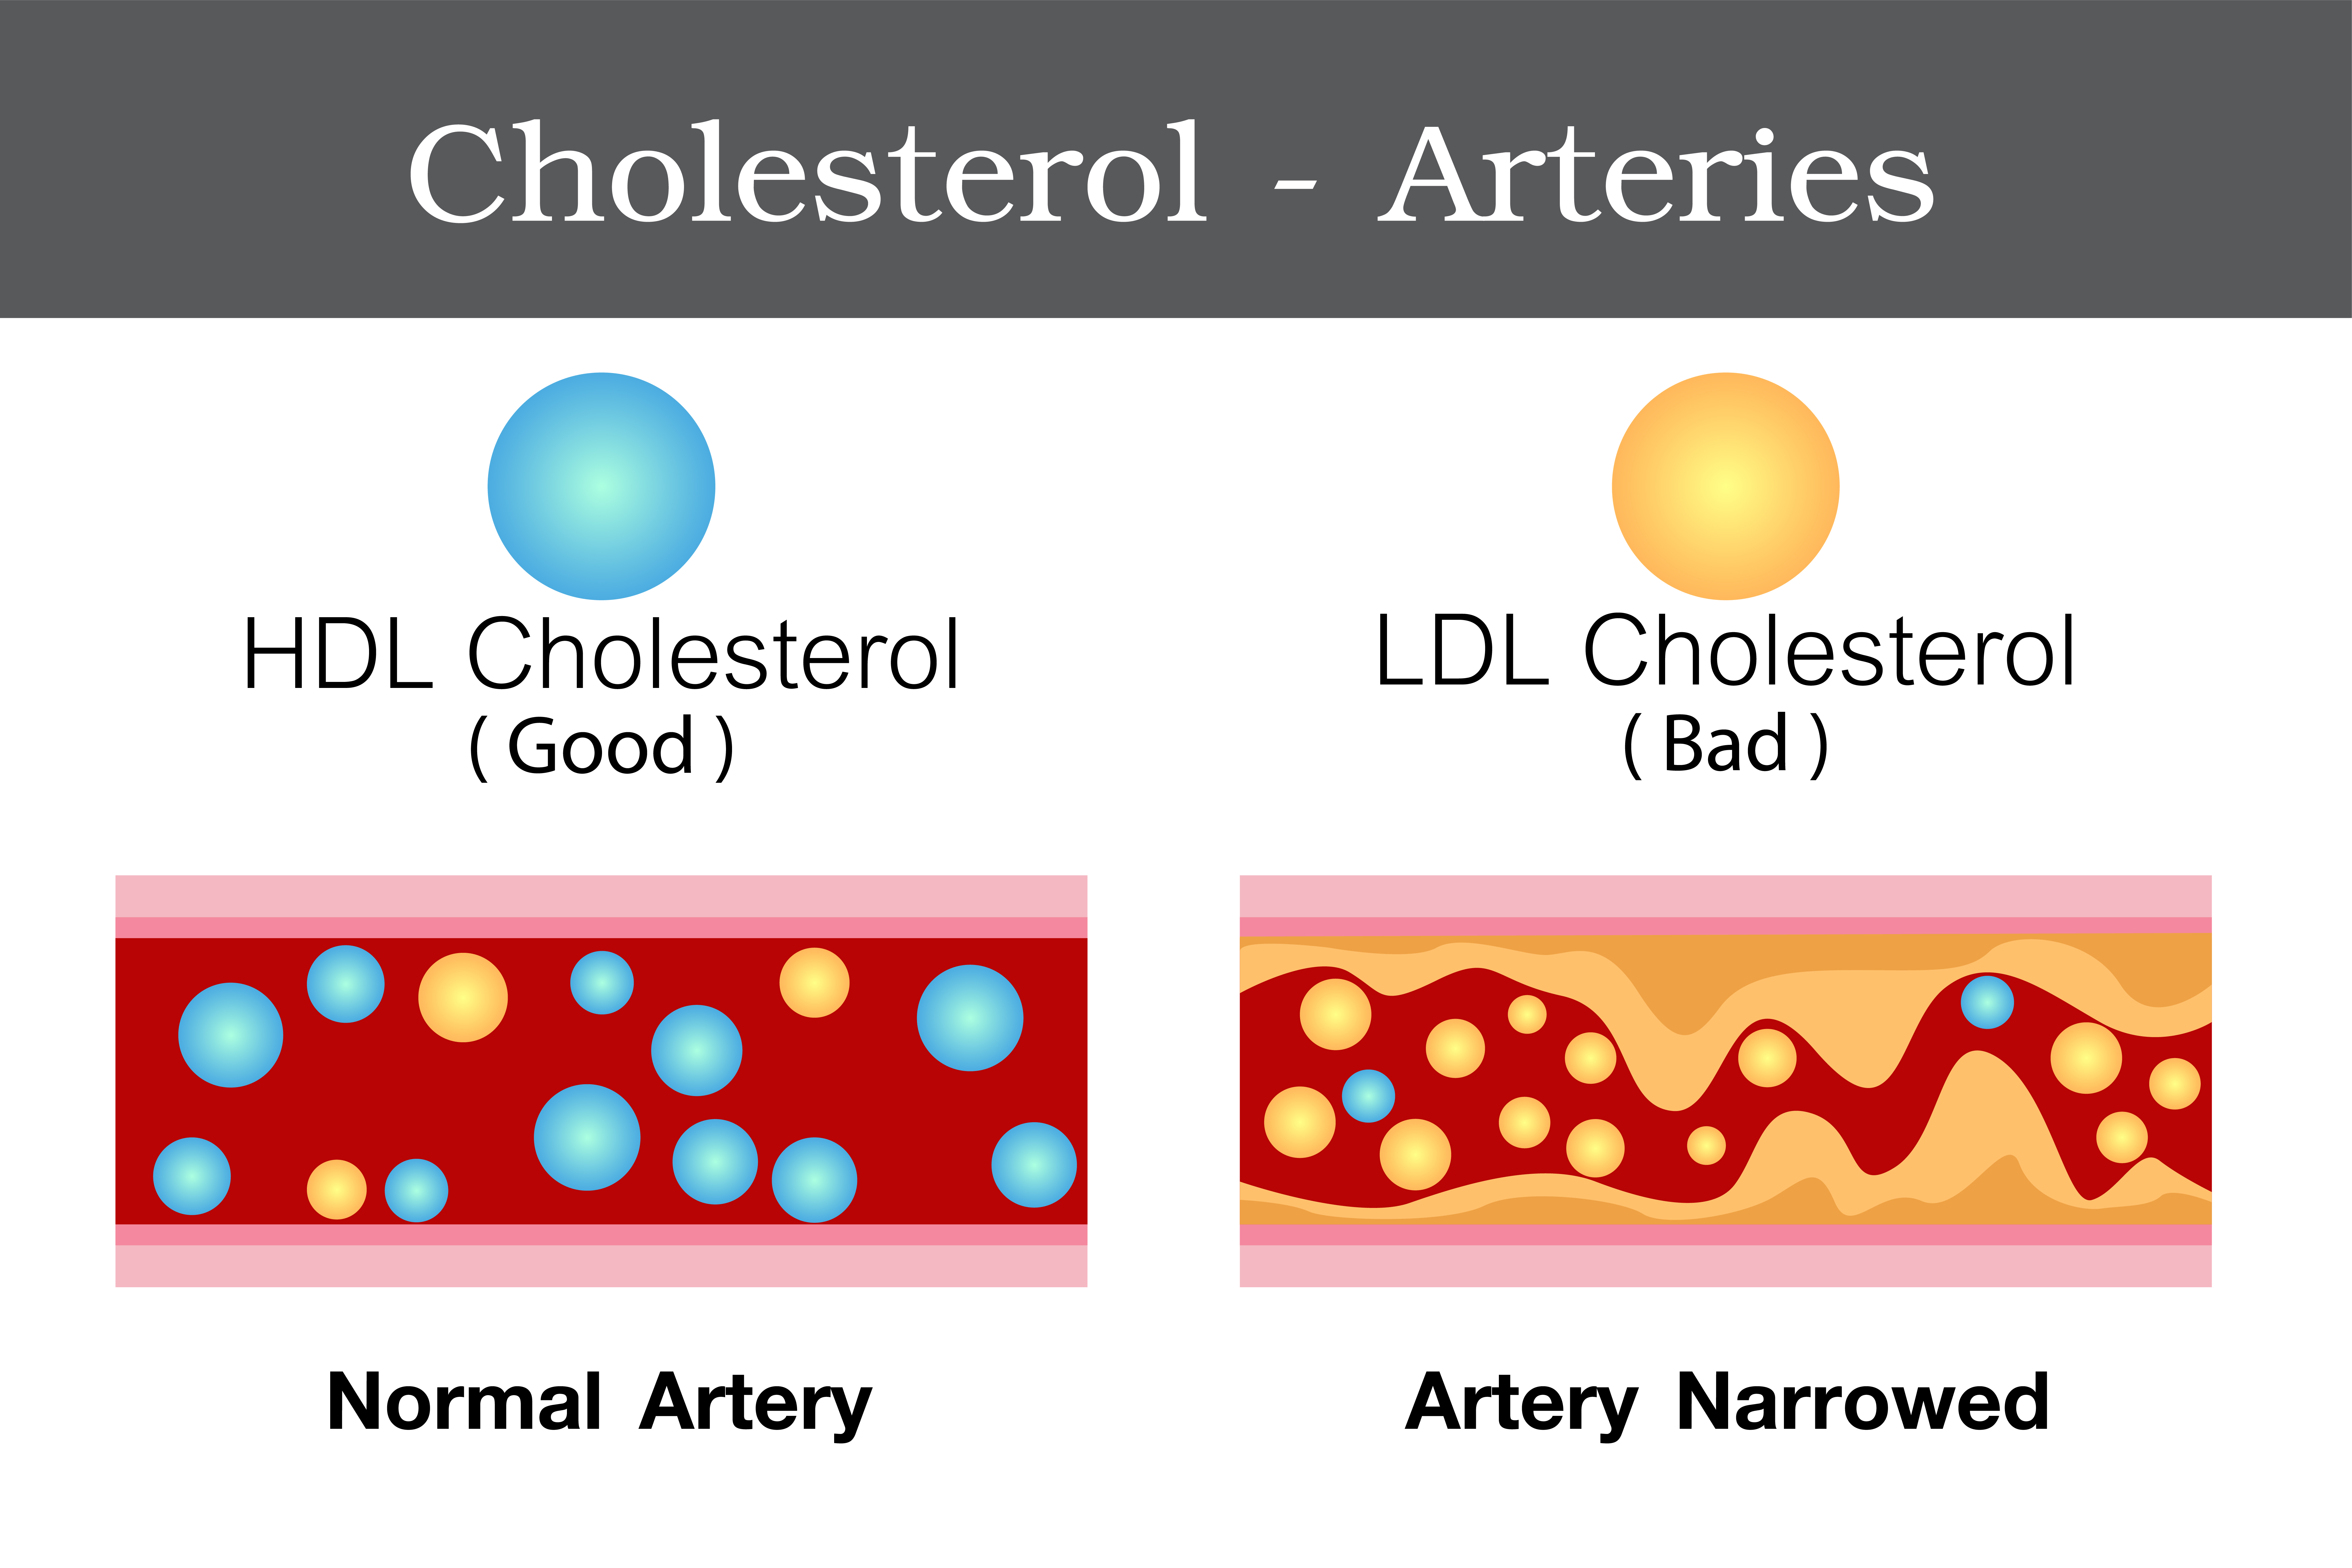 How Cholesterol can work... Technically